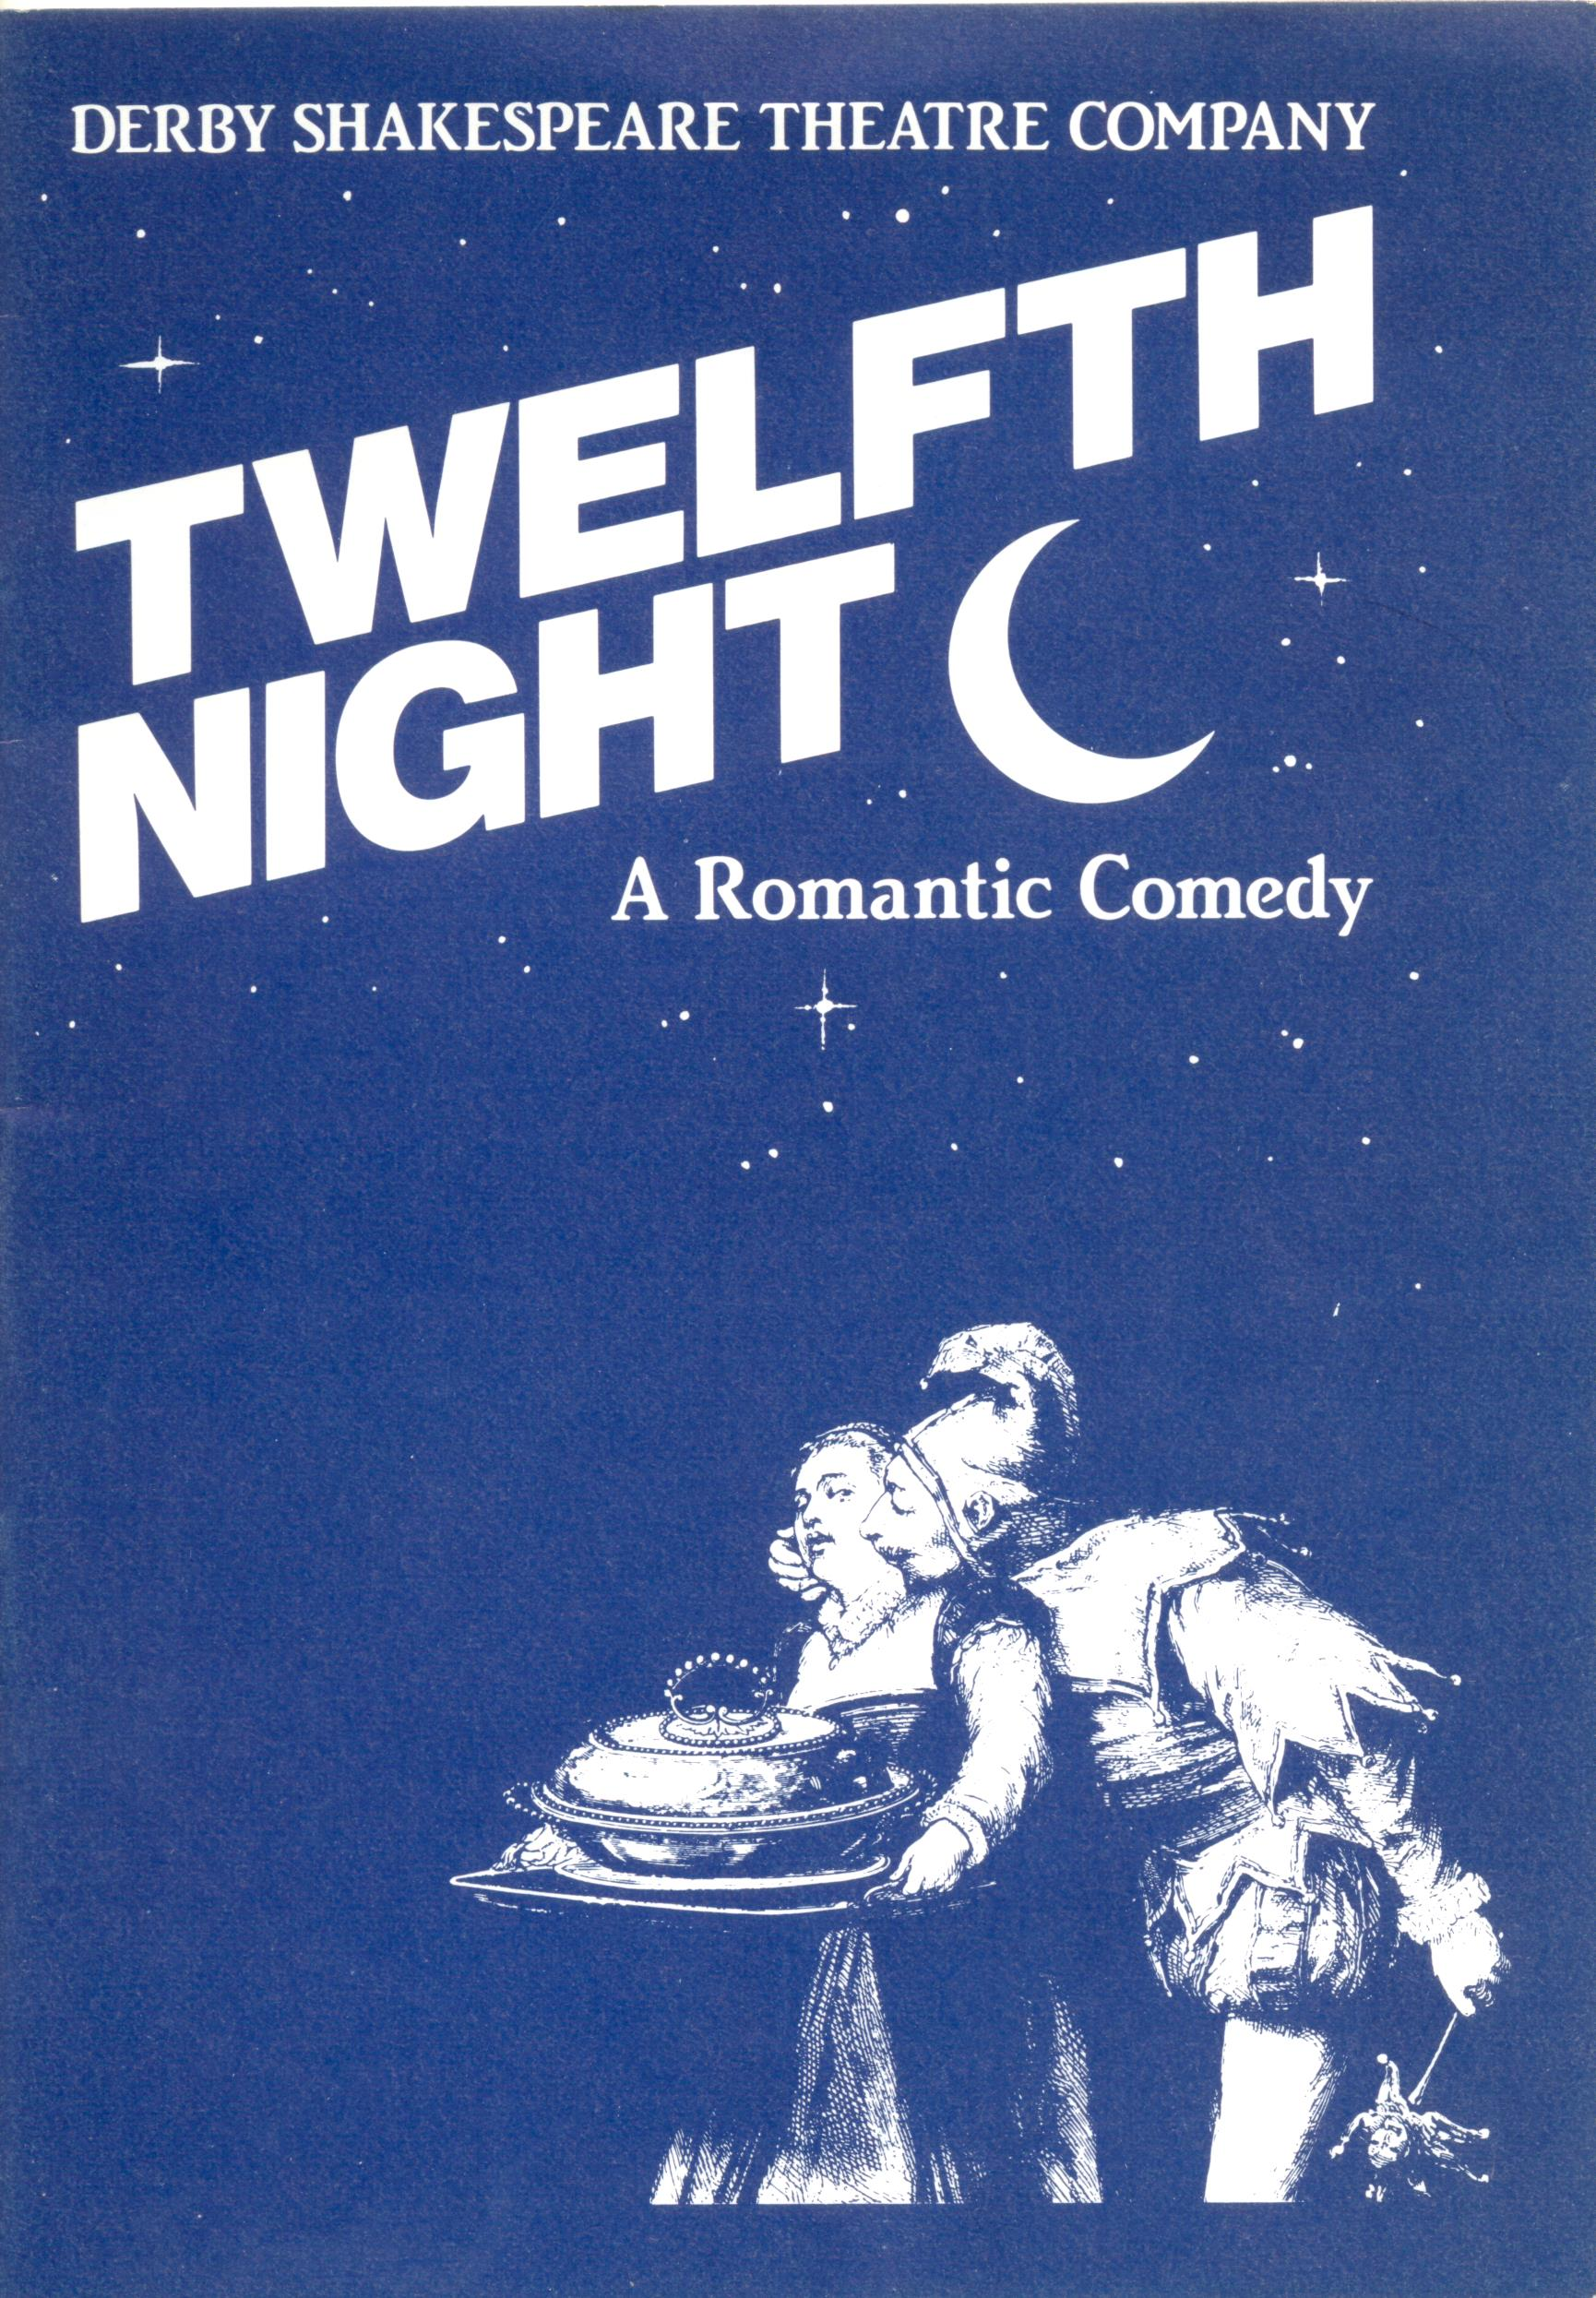 'Twelfth Night' 1987